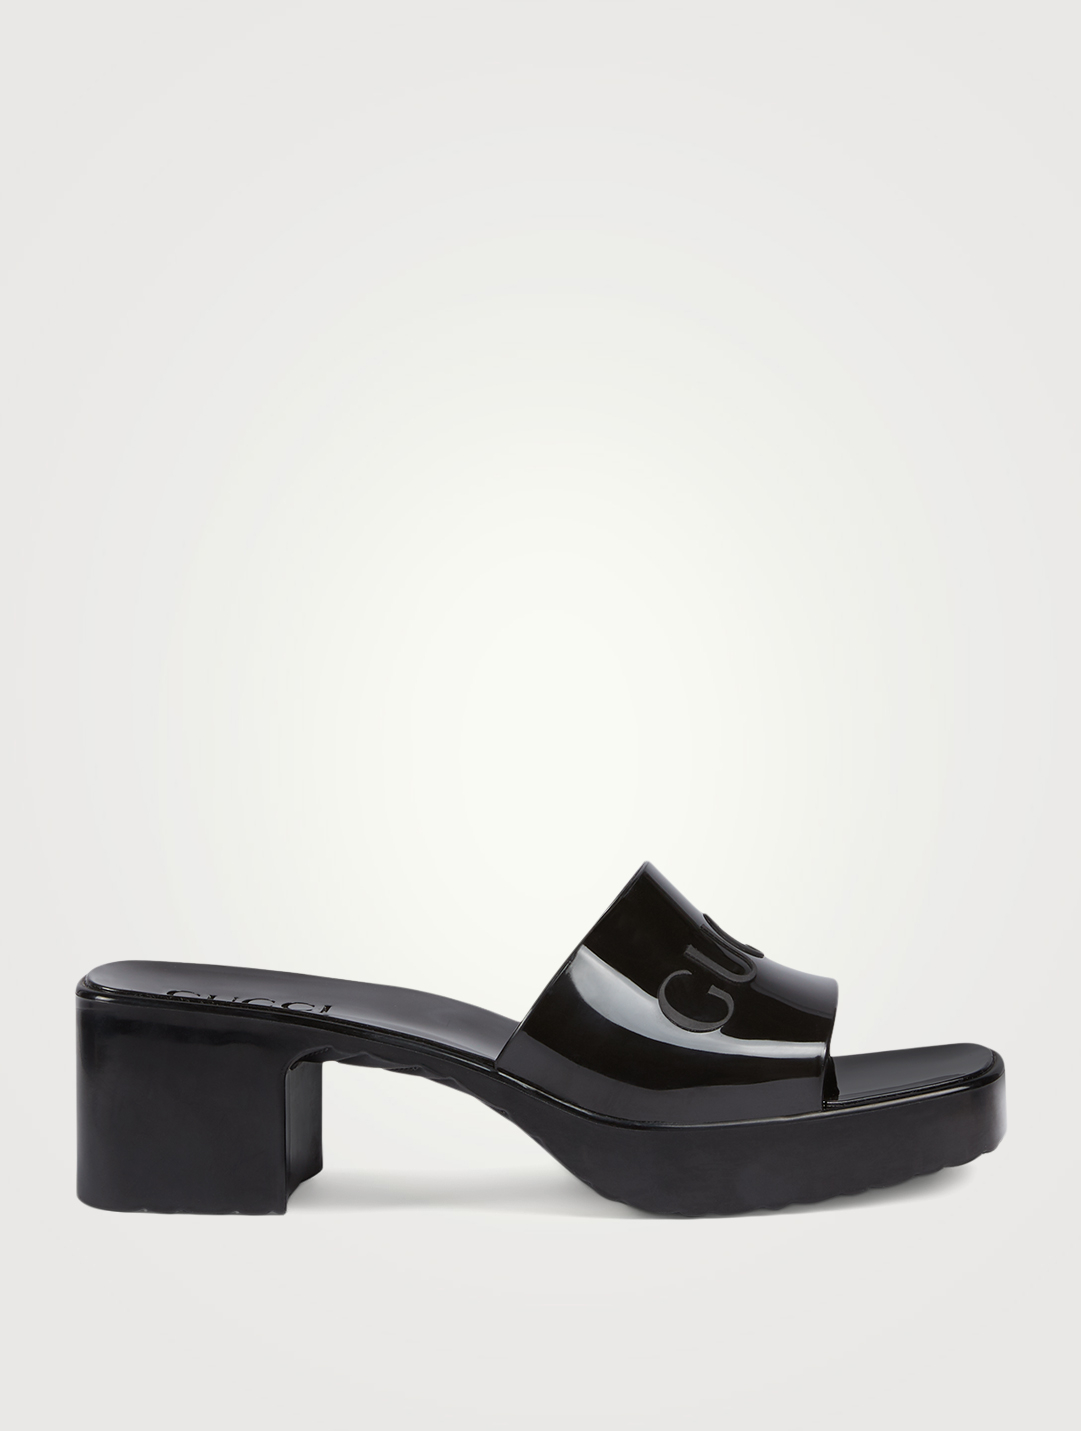 GUCCI Rubber Heeled Slide Sandals Women's Black